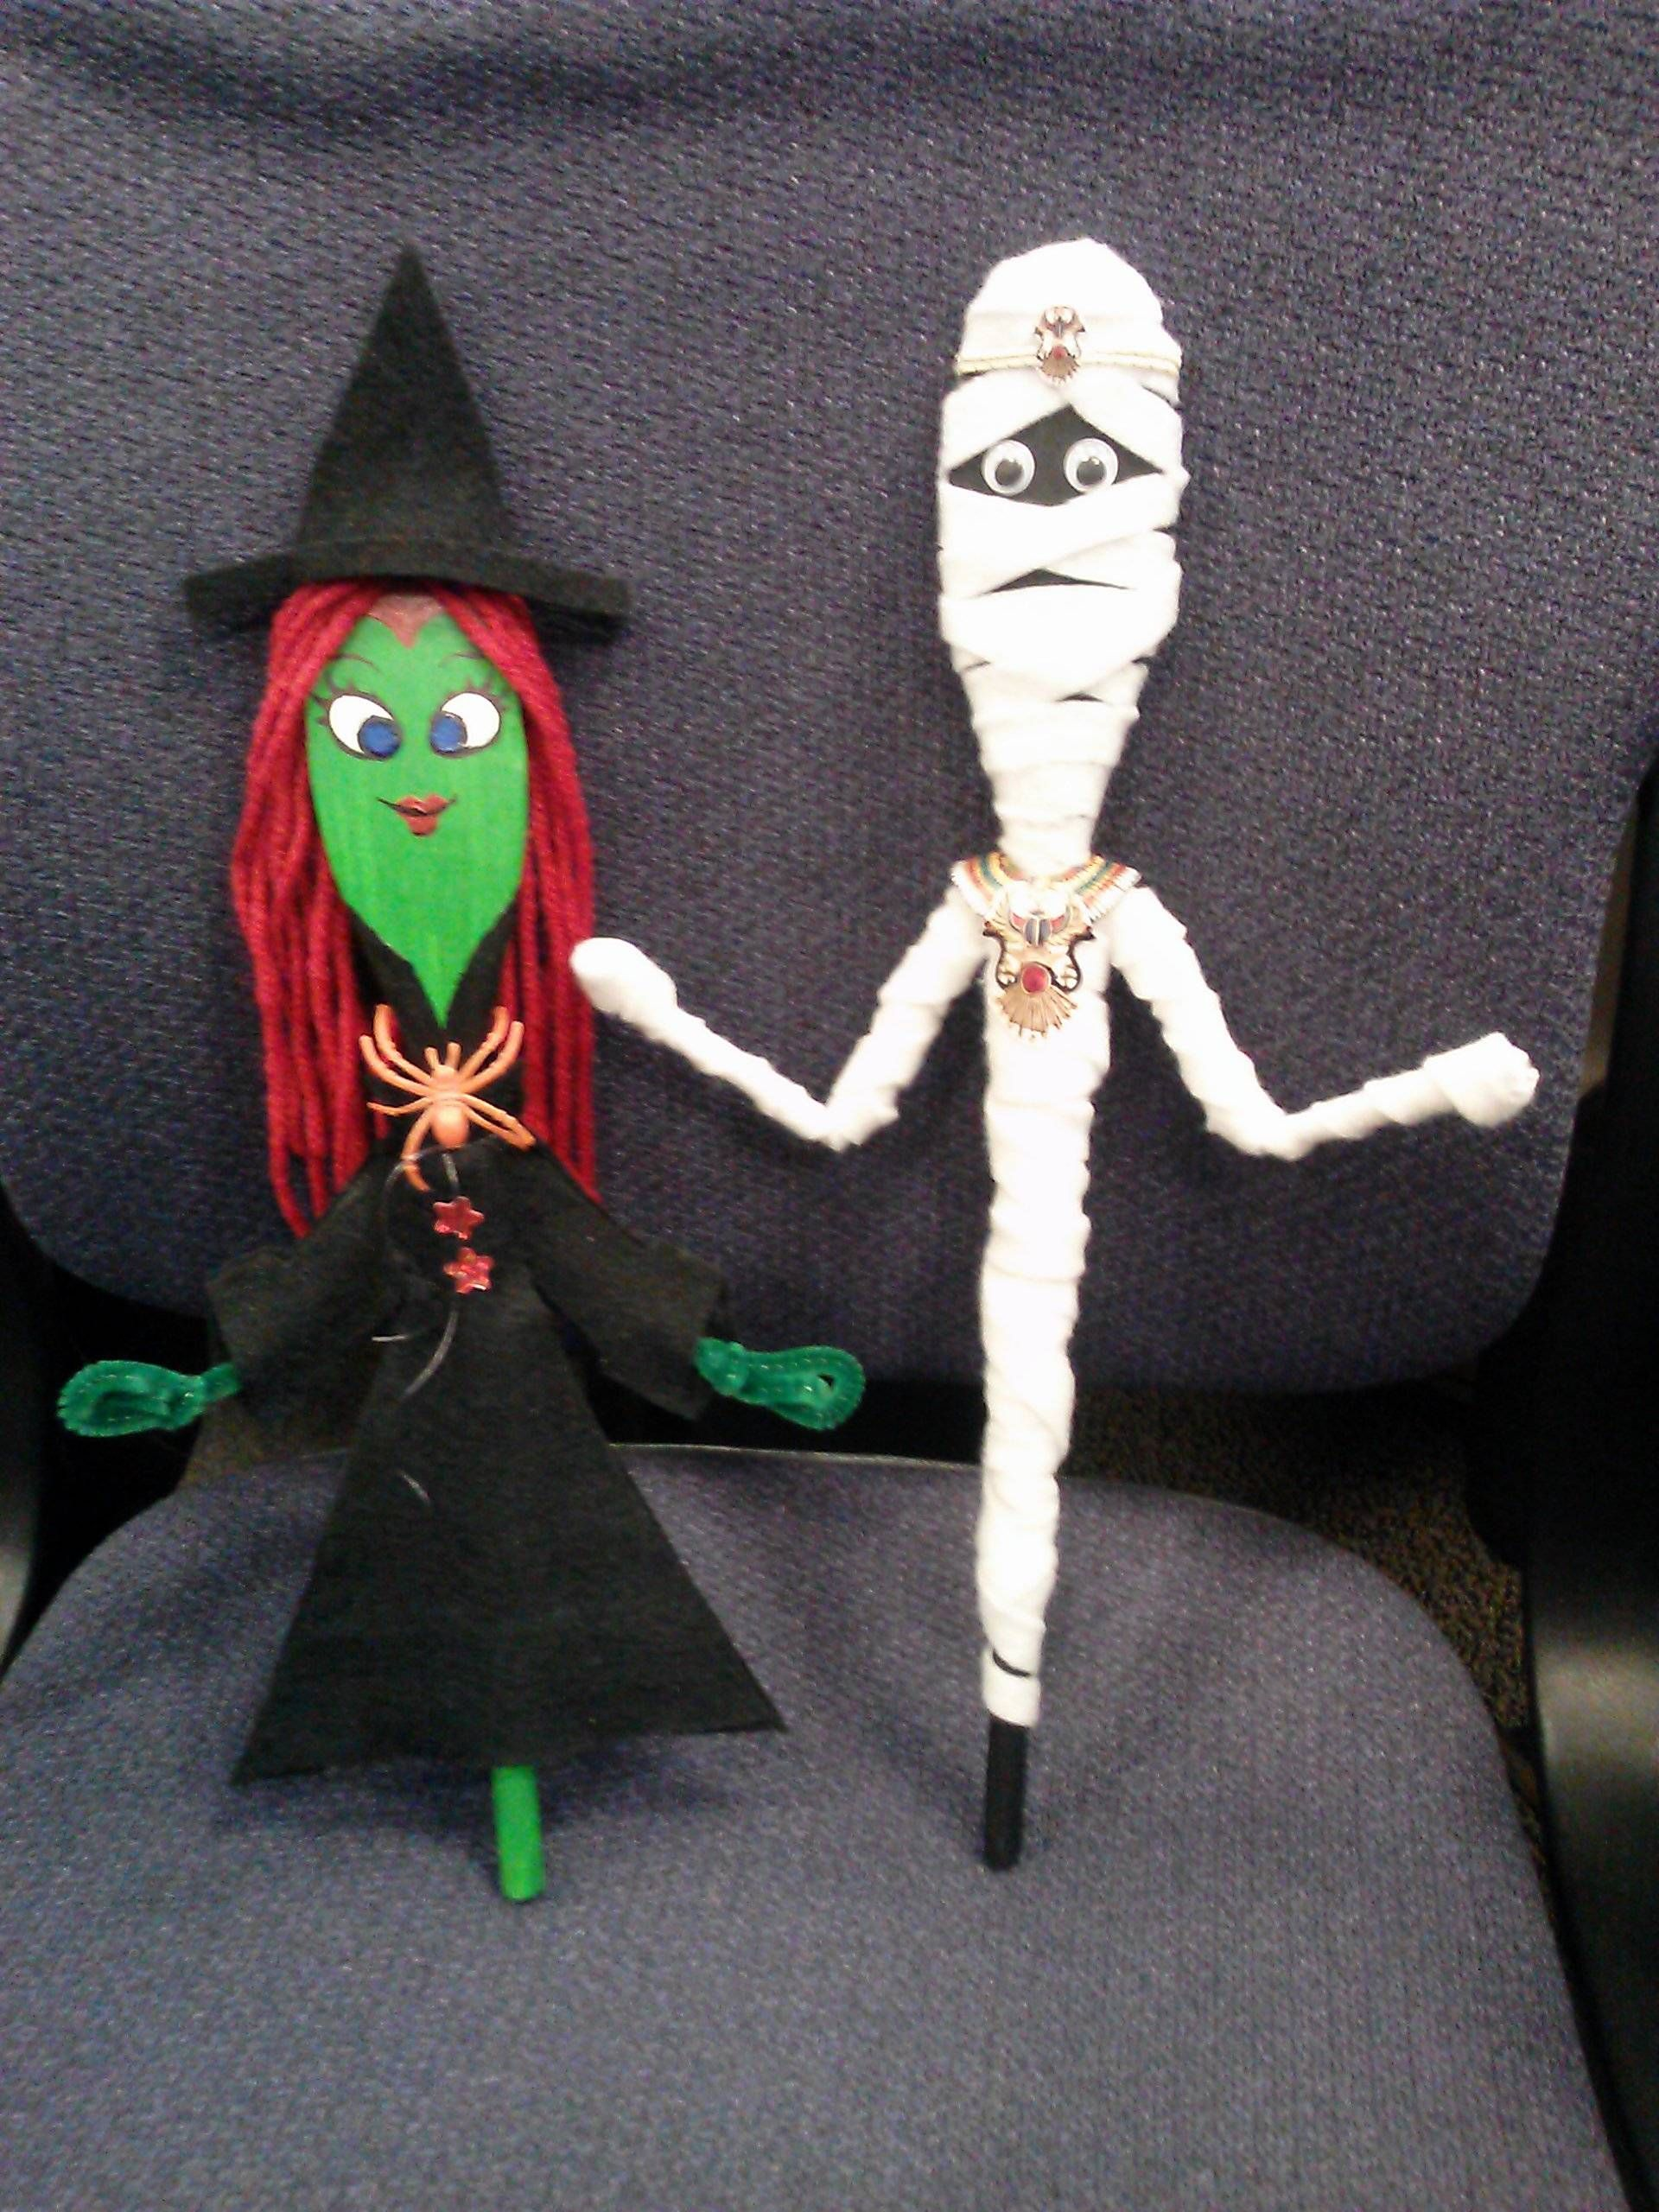 Kids halloween craft kits - Halloween Spoon Puppet Craft For Kids Witch And Mummy Puppets Made Out Of Wooden Spoons